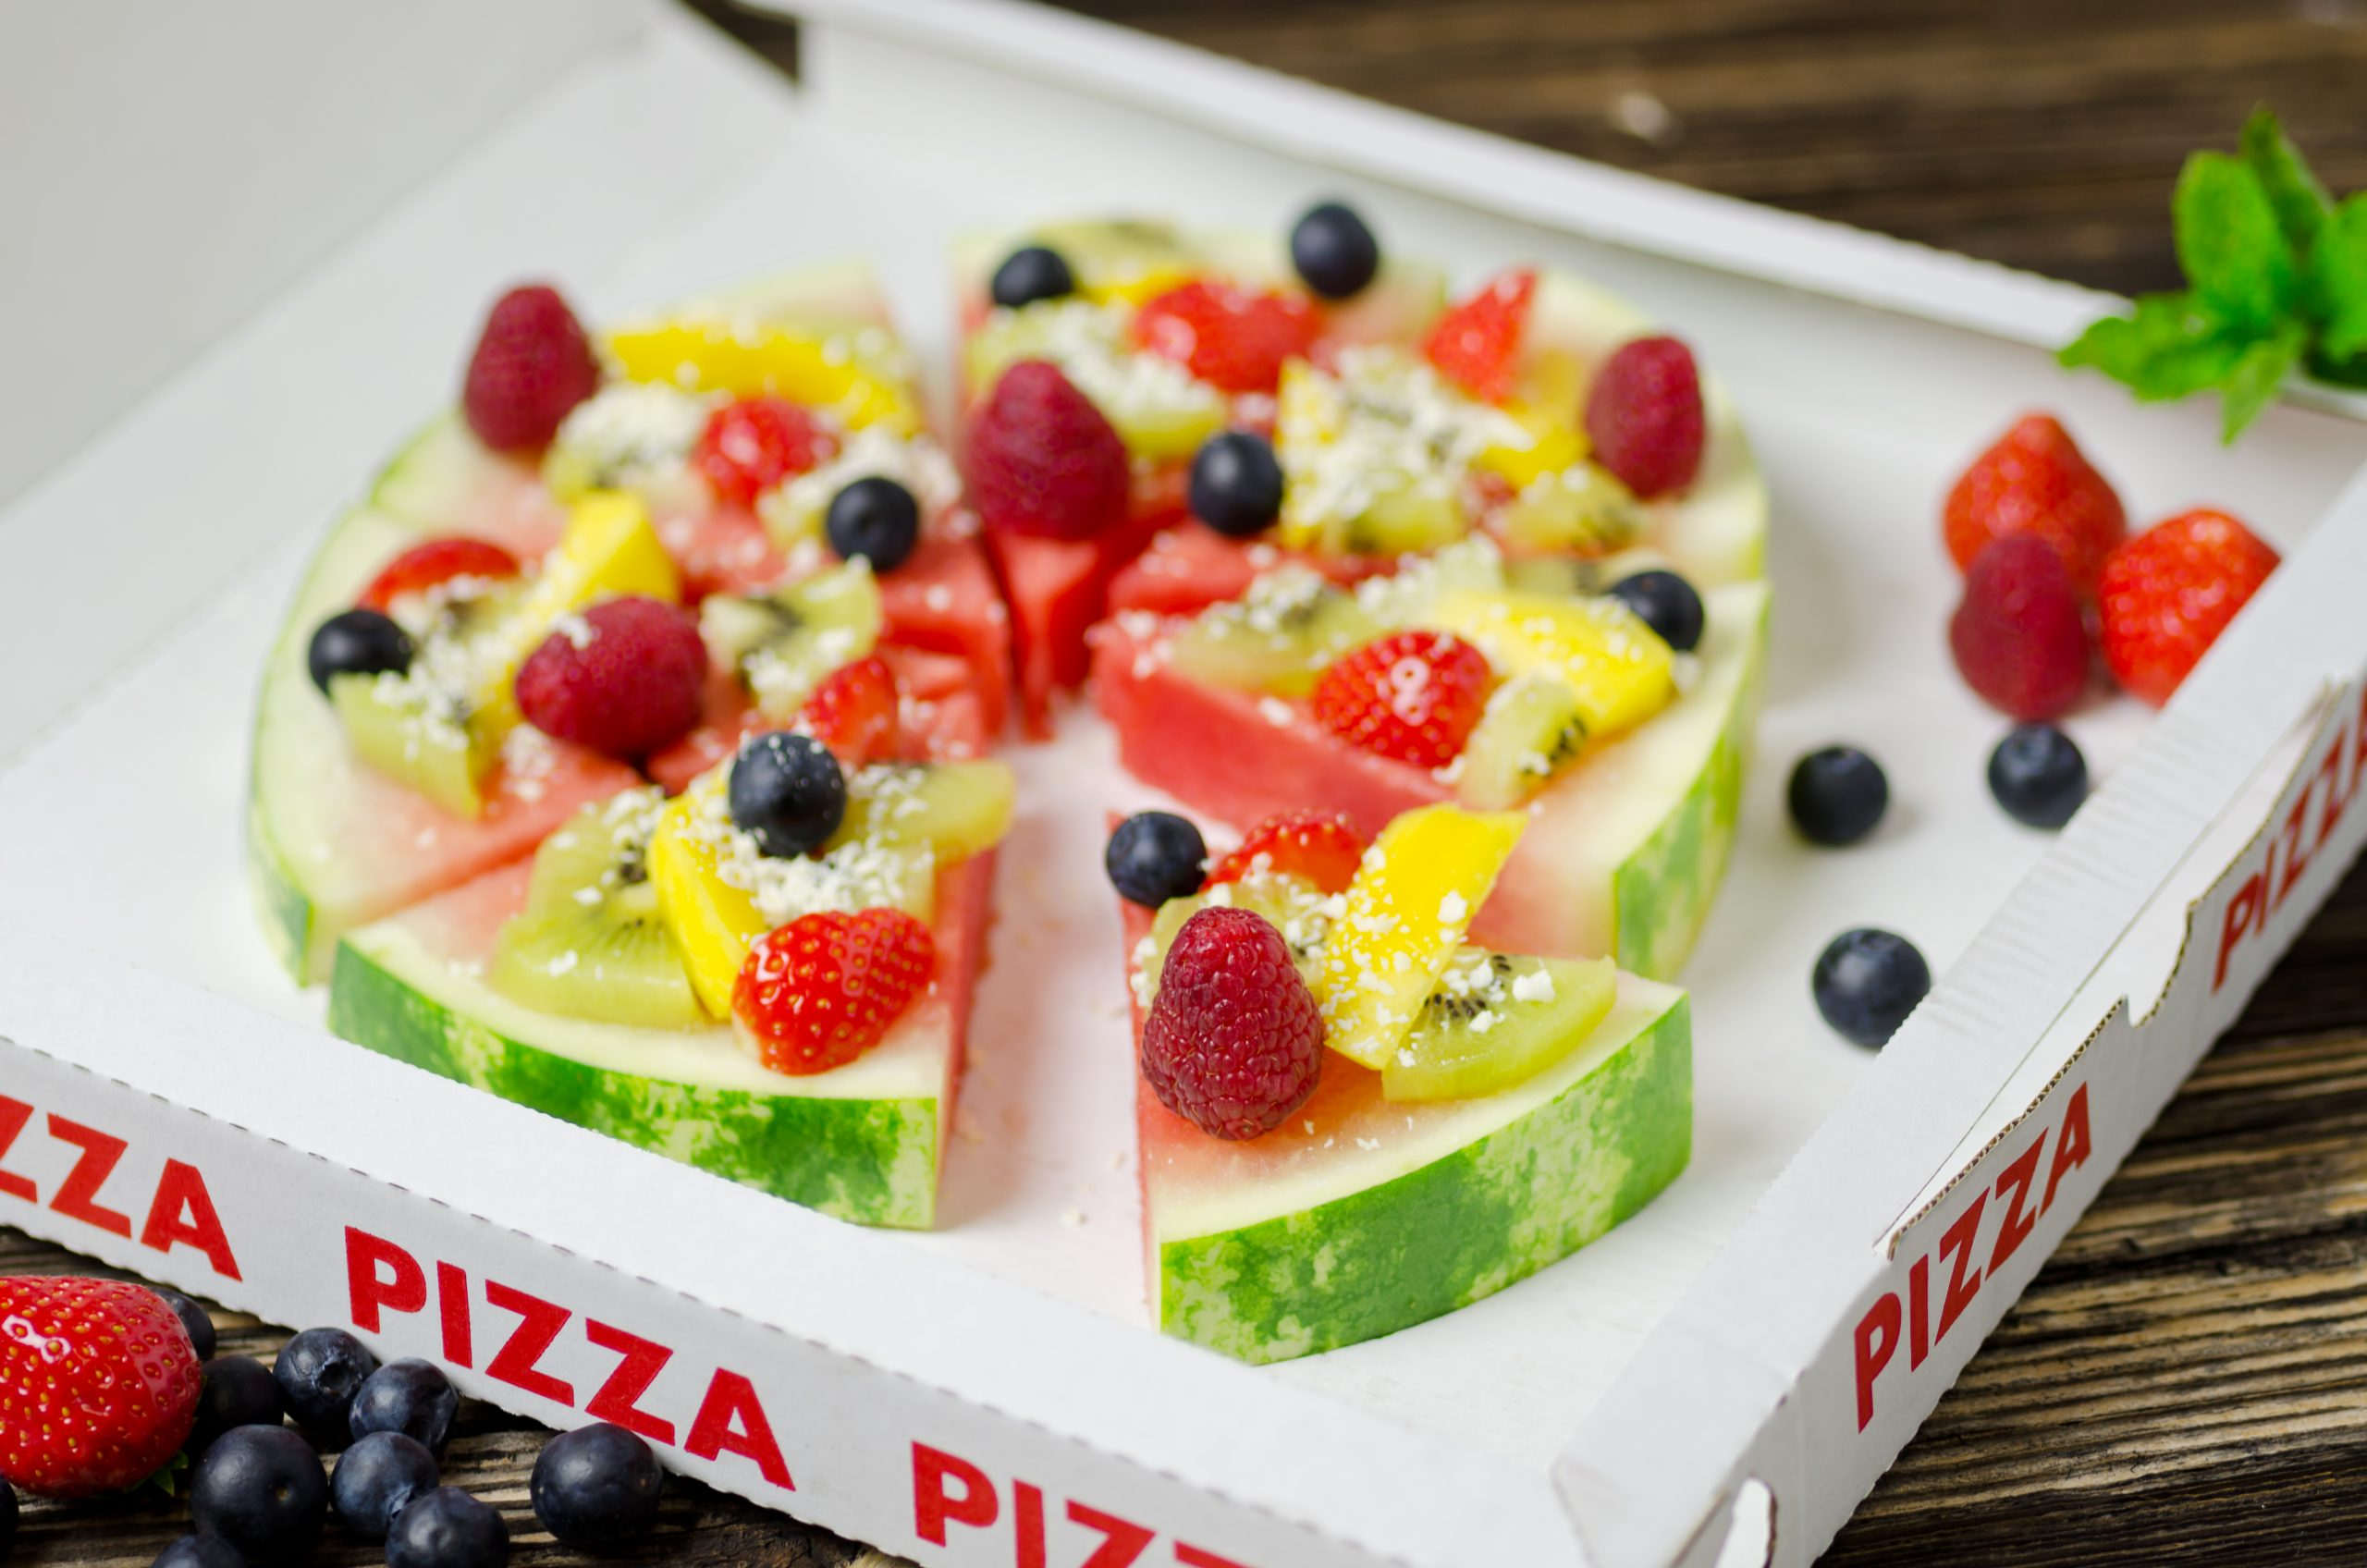 diy pizza de sandia